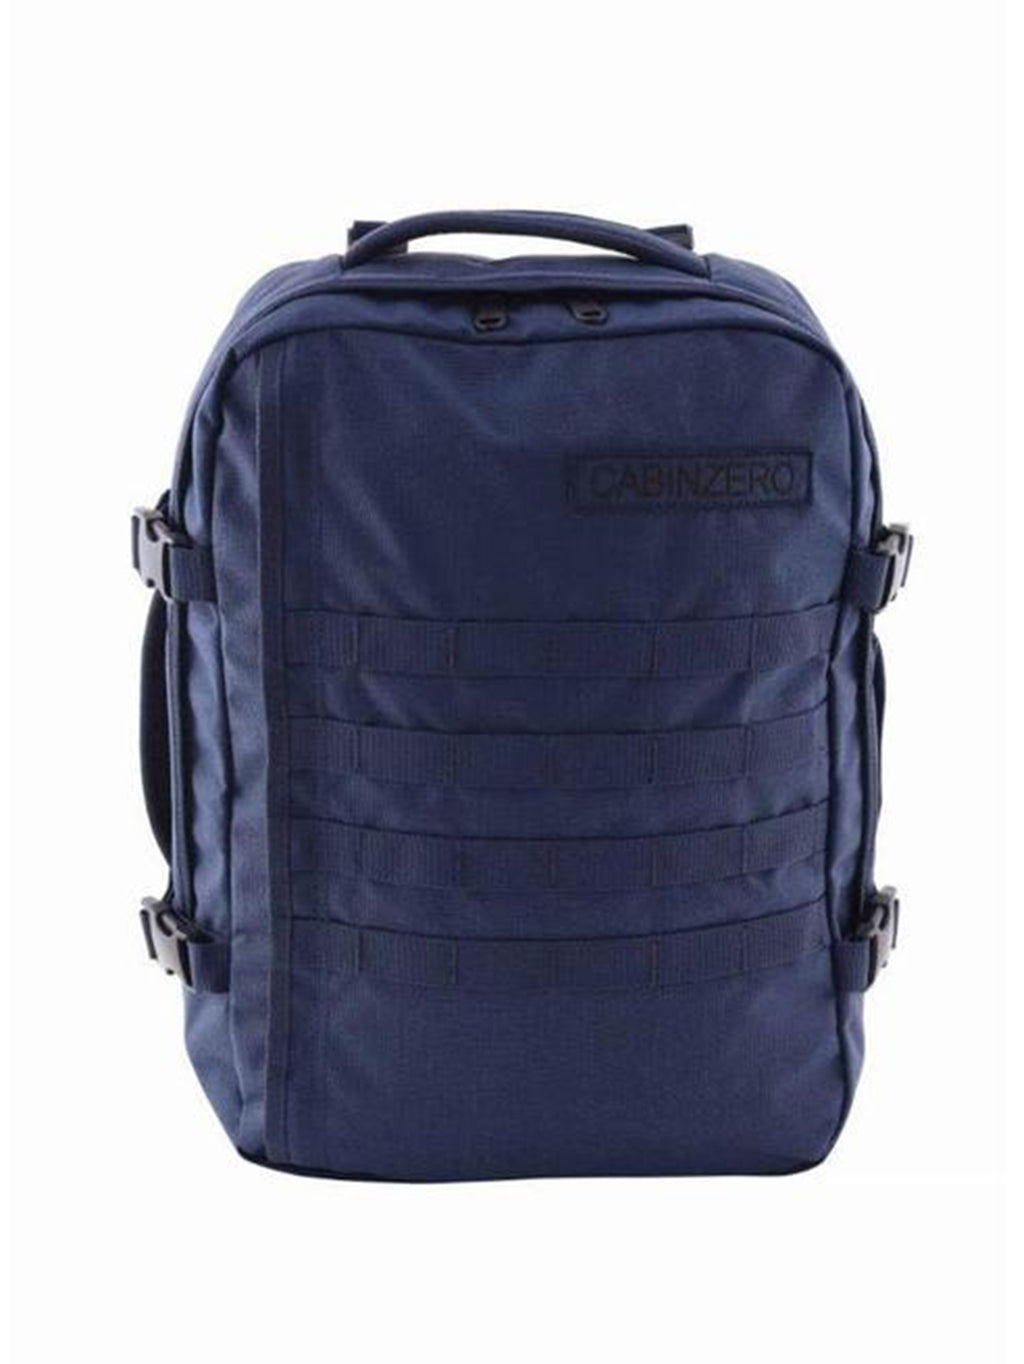 Cabinzero Military 28L in Navy Color - This Is For Him